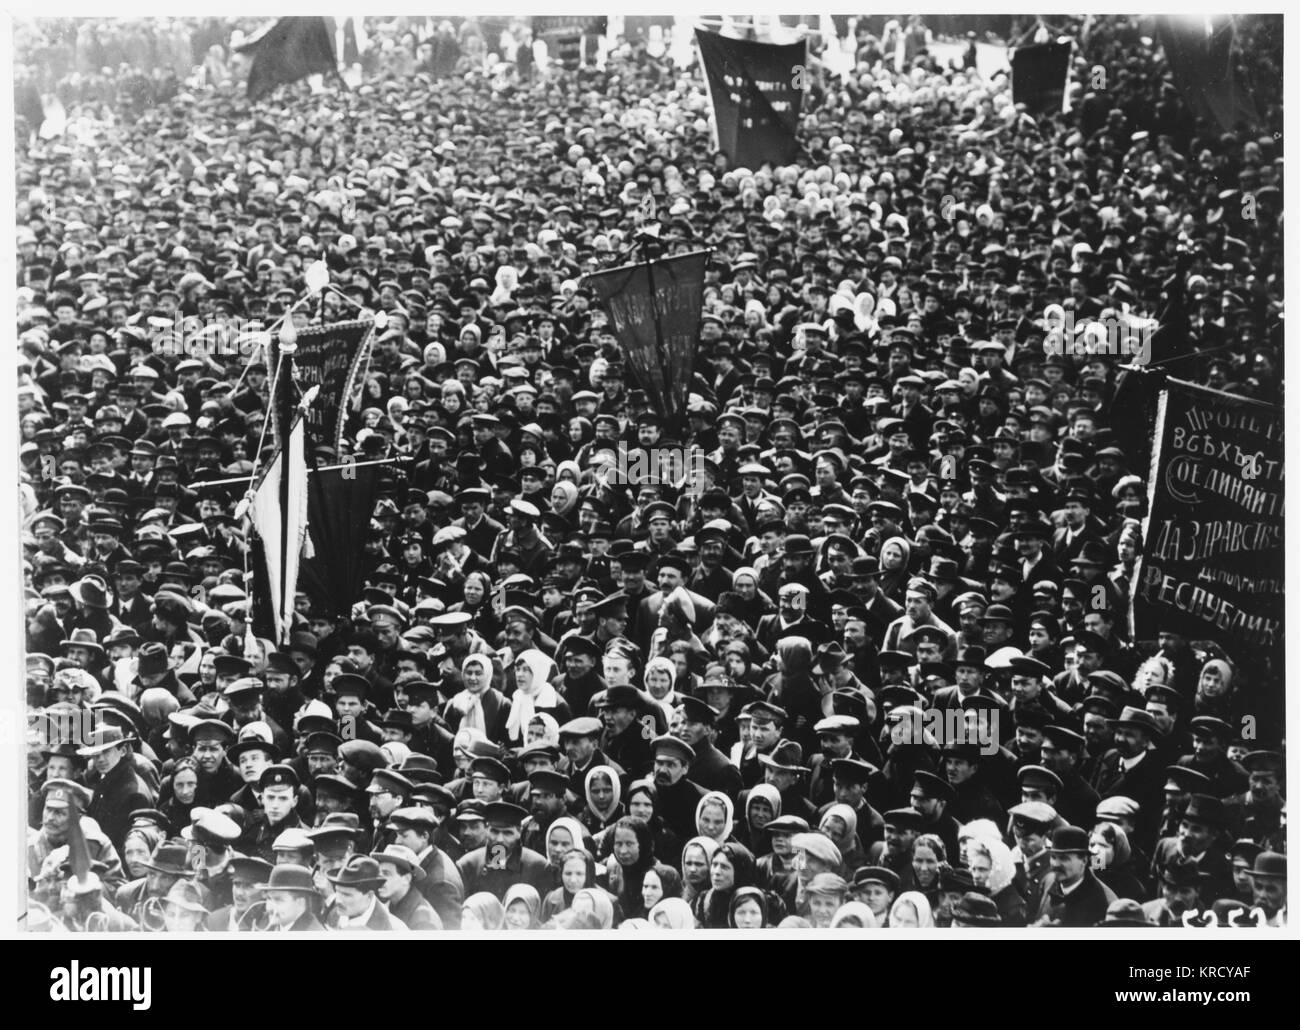 'May Day' demonstrators at  Petrograd.         Date: 18 April 1917 - Stock Image